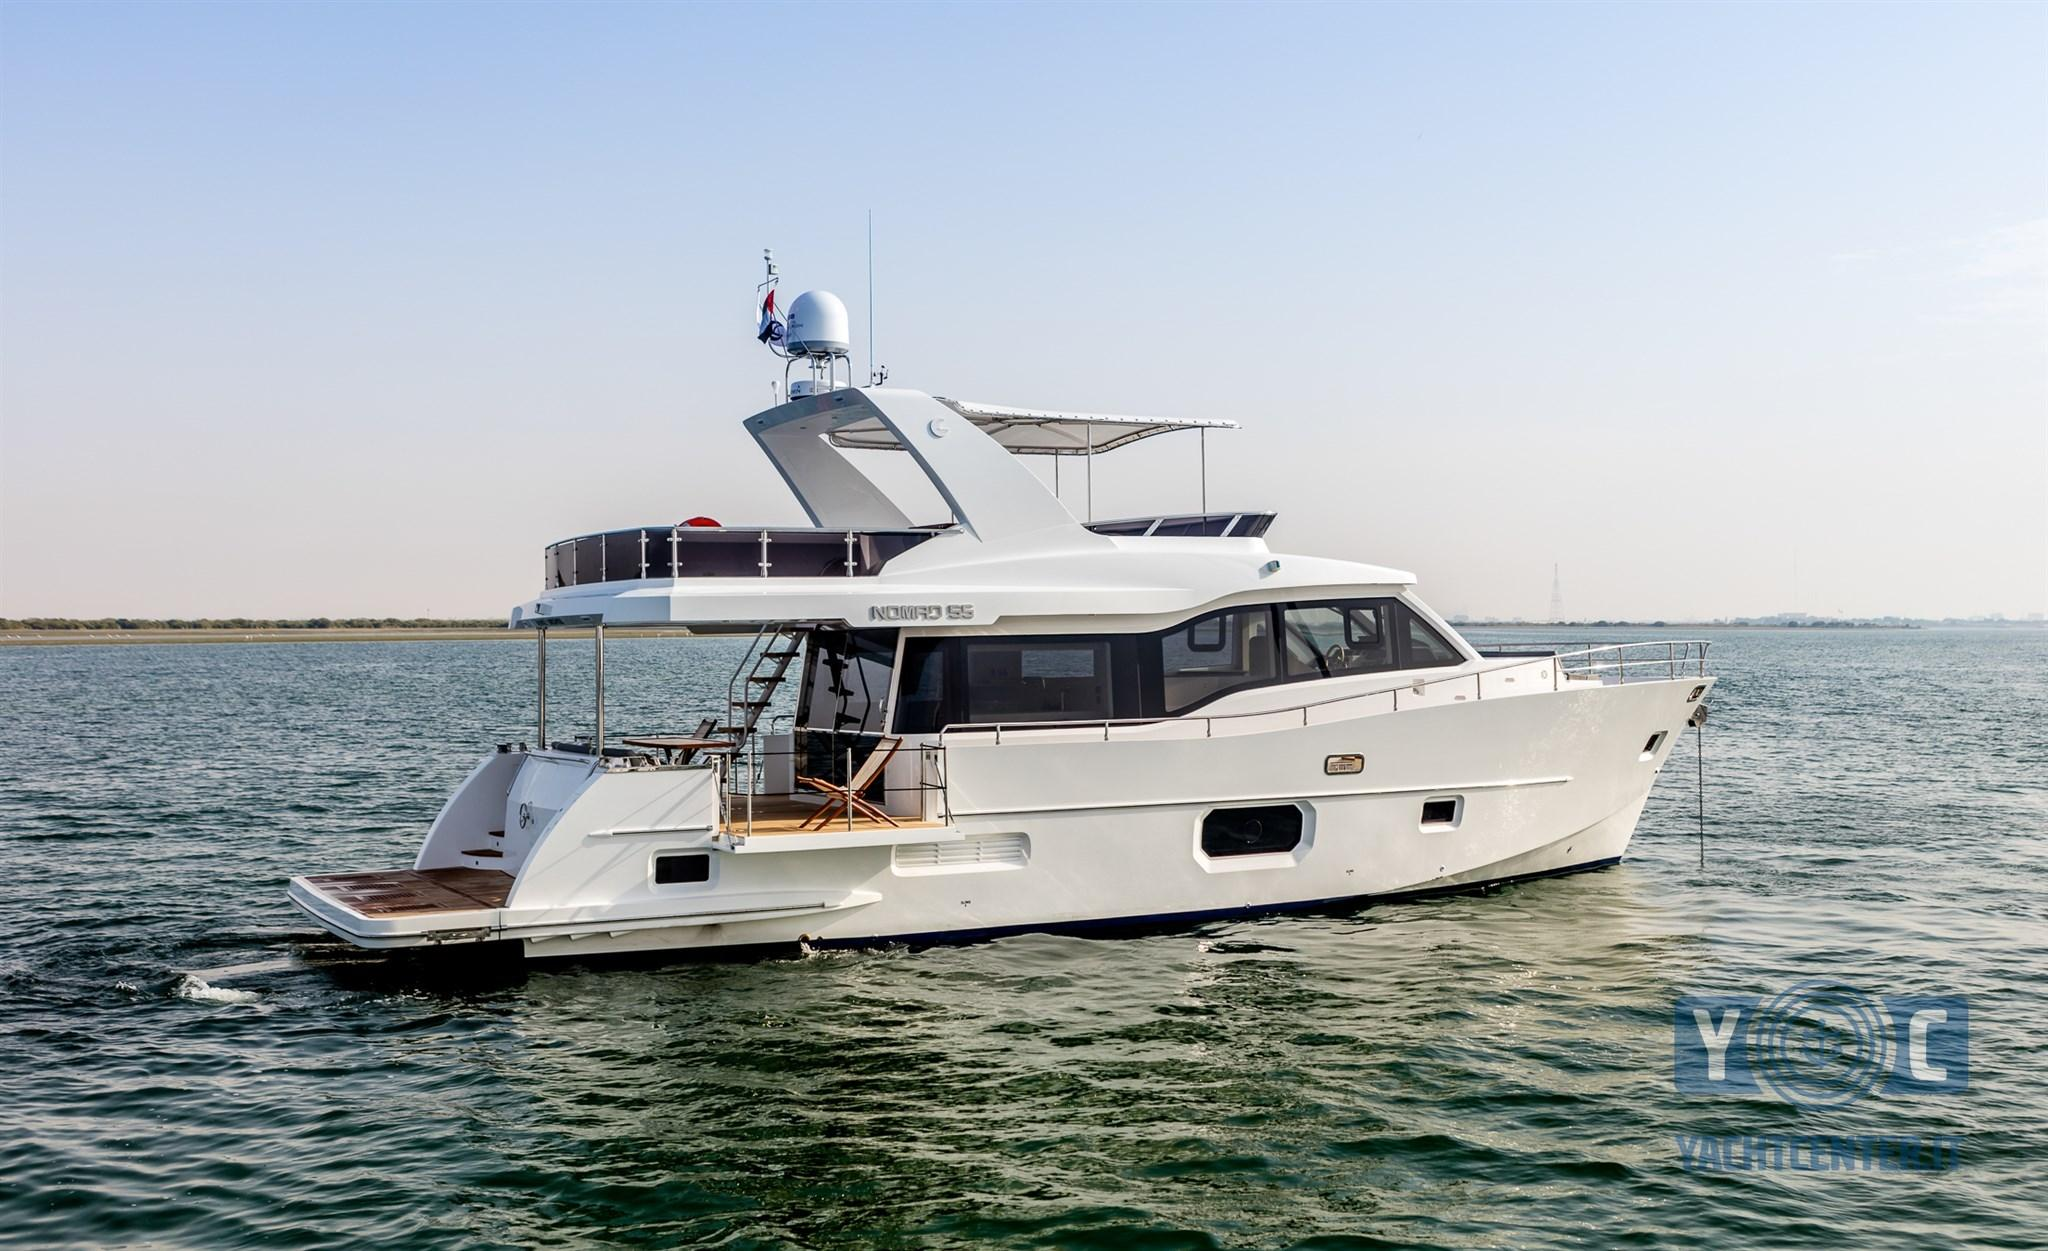 2017 Majesty Yachts Nomad 55 Ft Power Boat For Sale Www